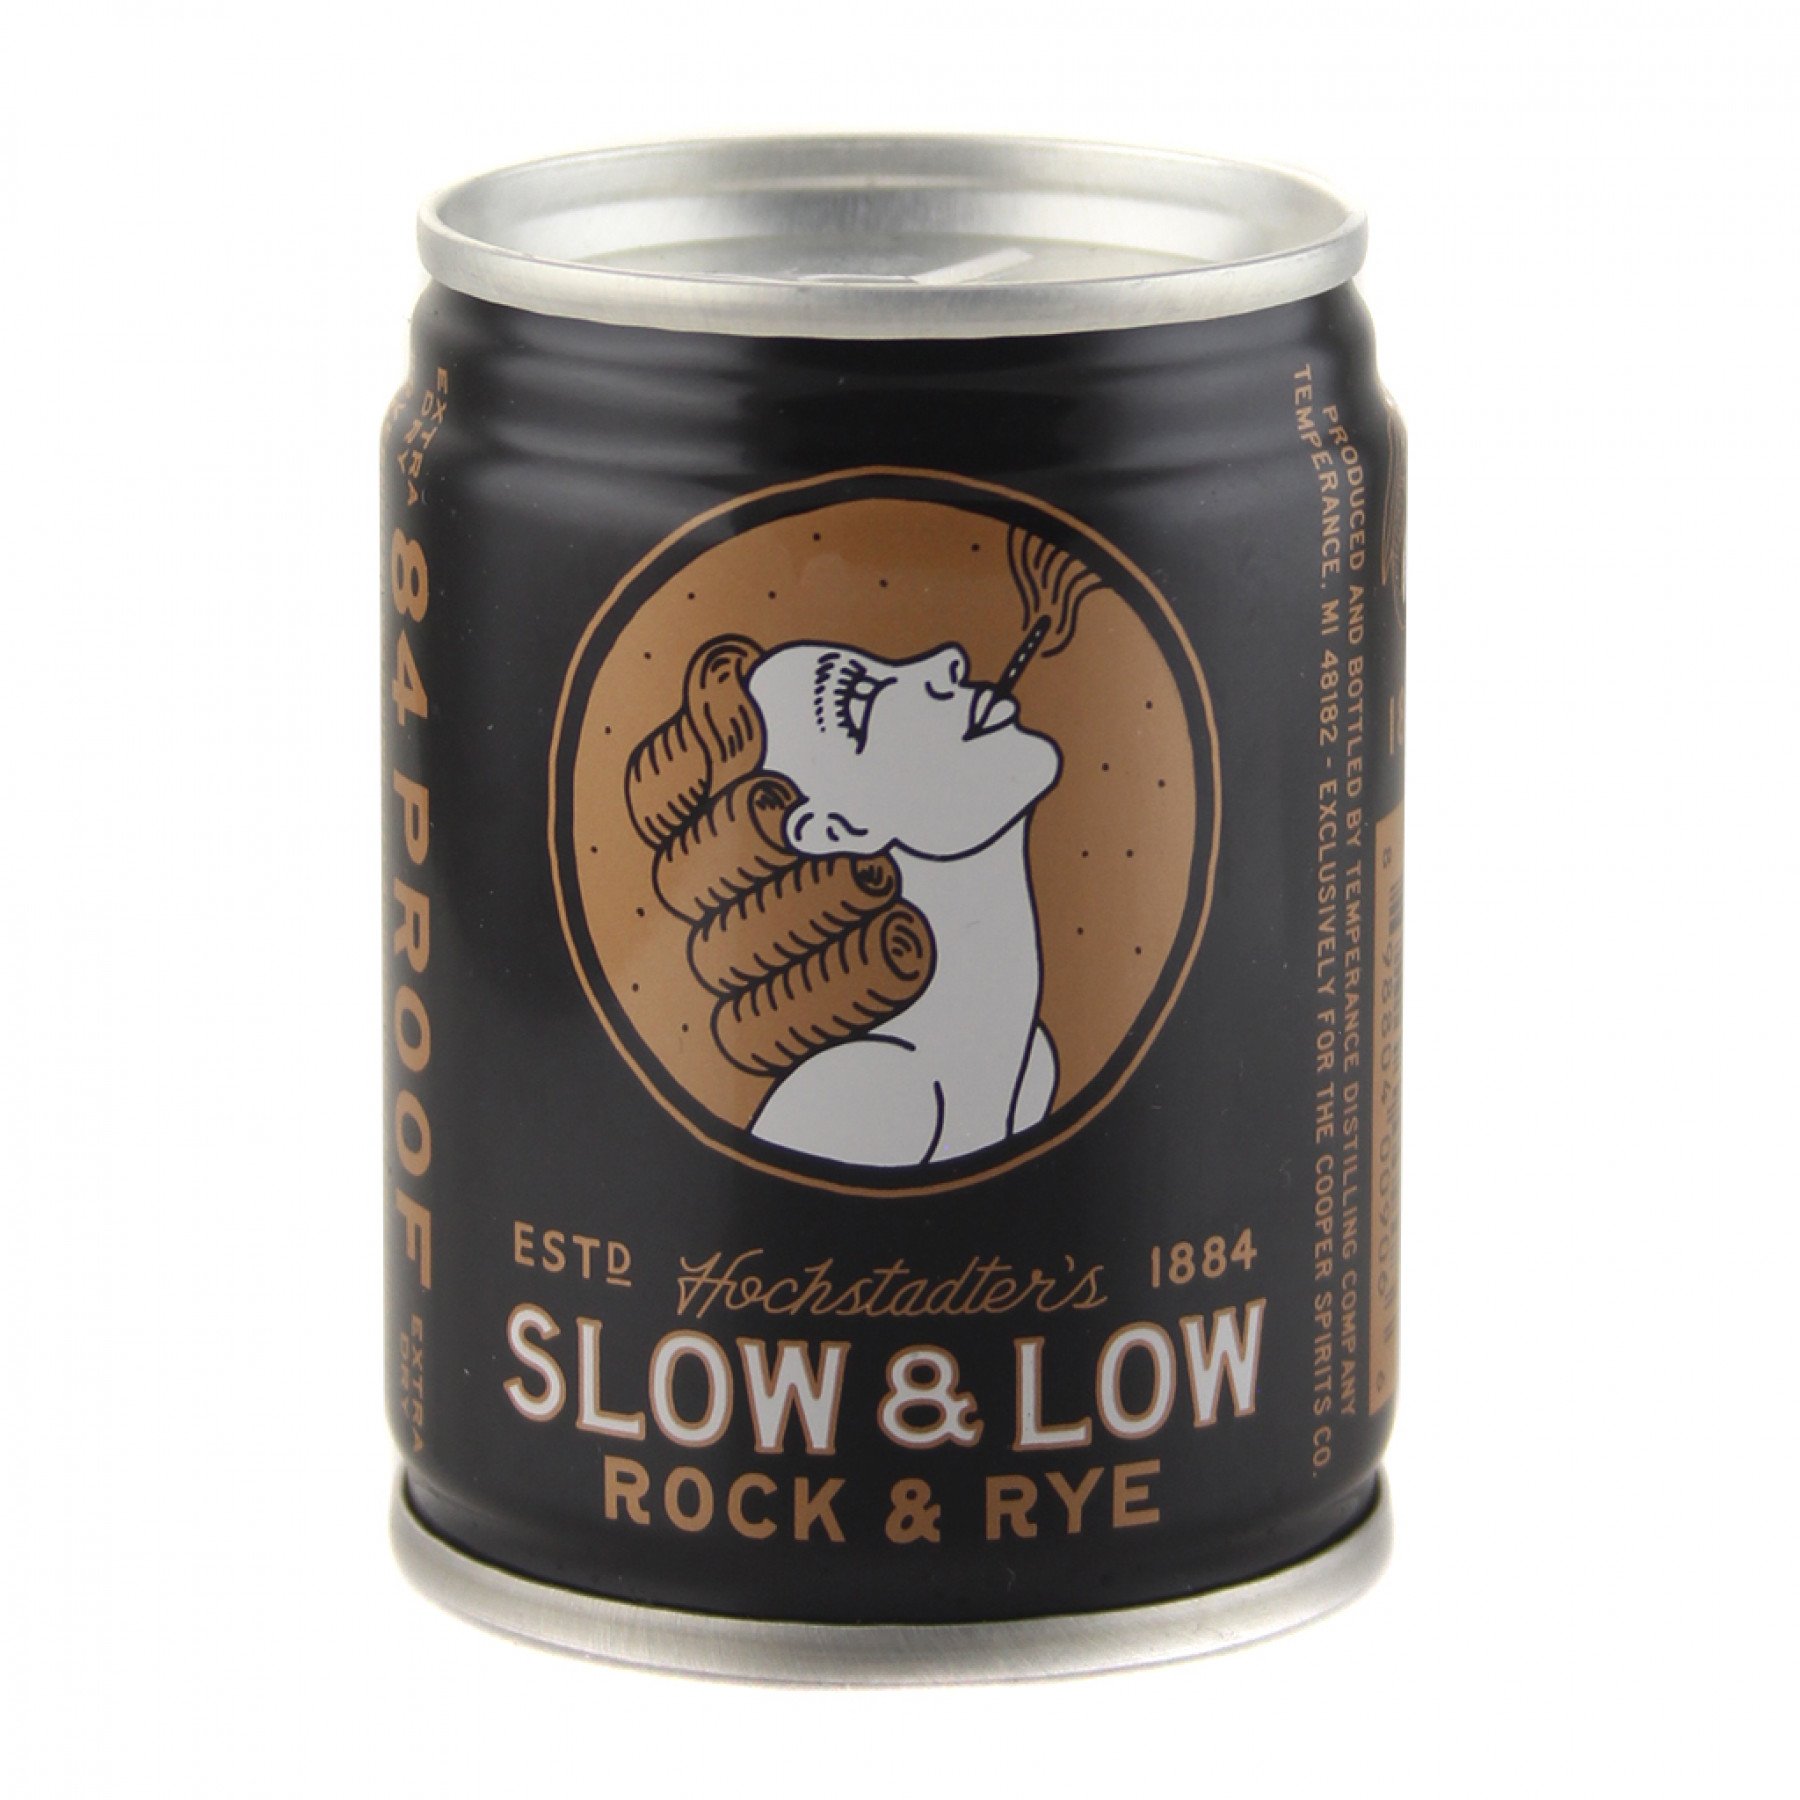 1. Hochstadter's Slow & Low Rock and Rye